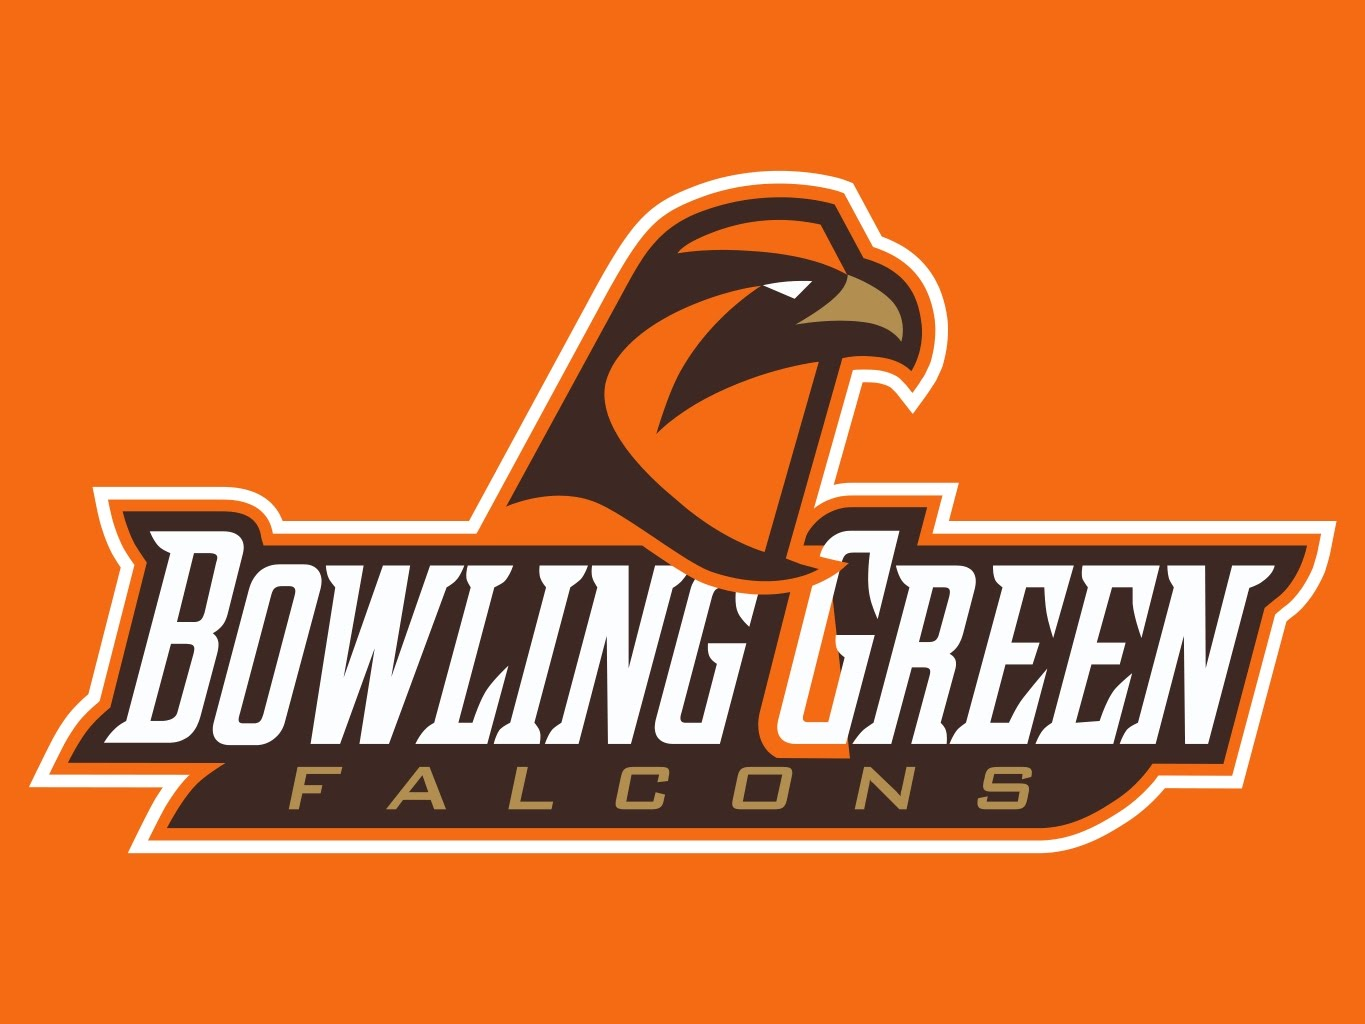 bowling green logo coloring pages - photo#28